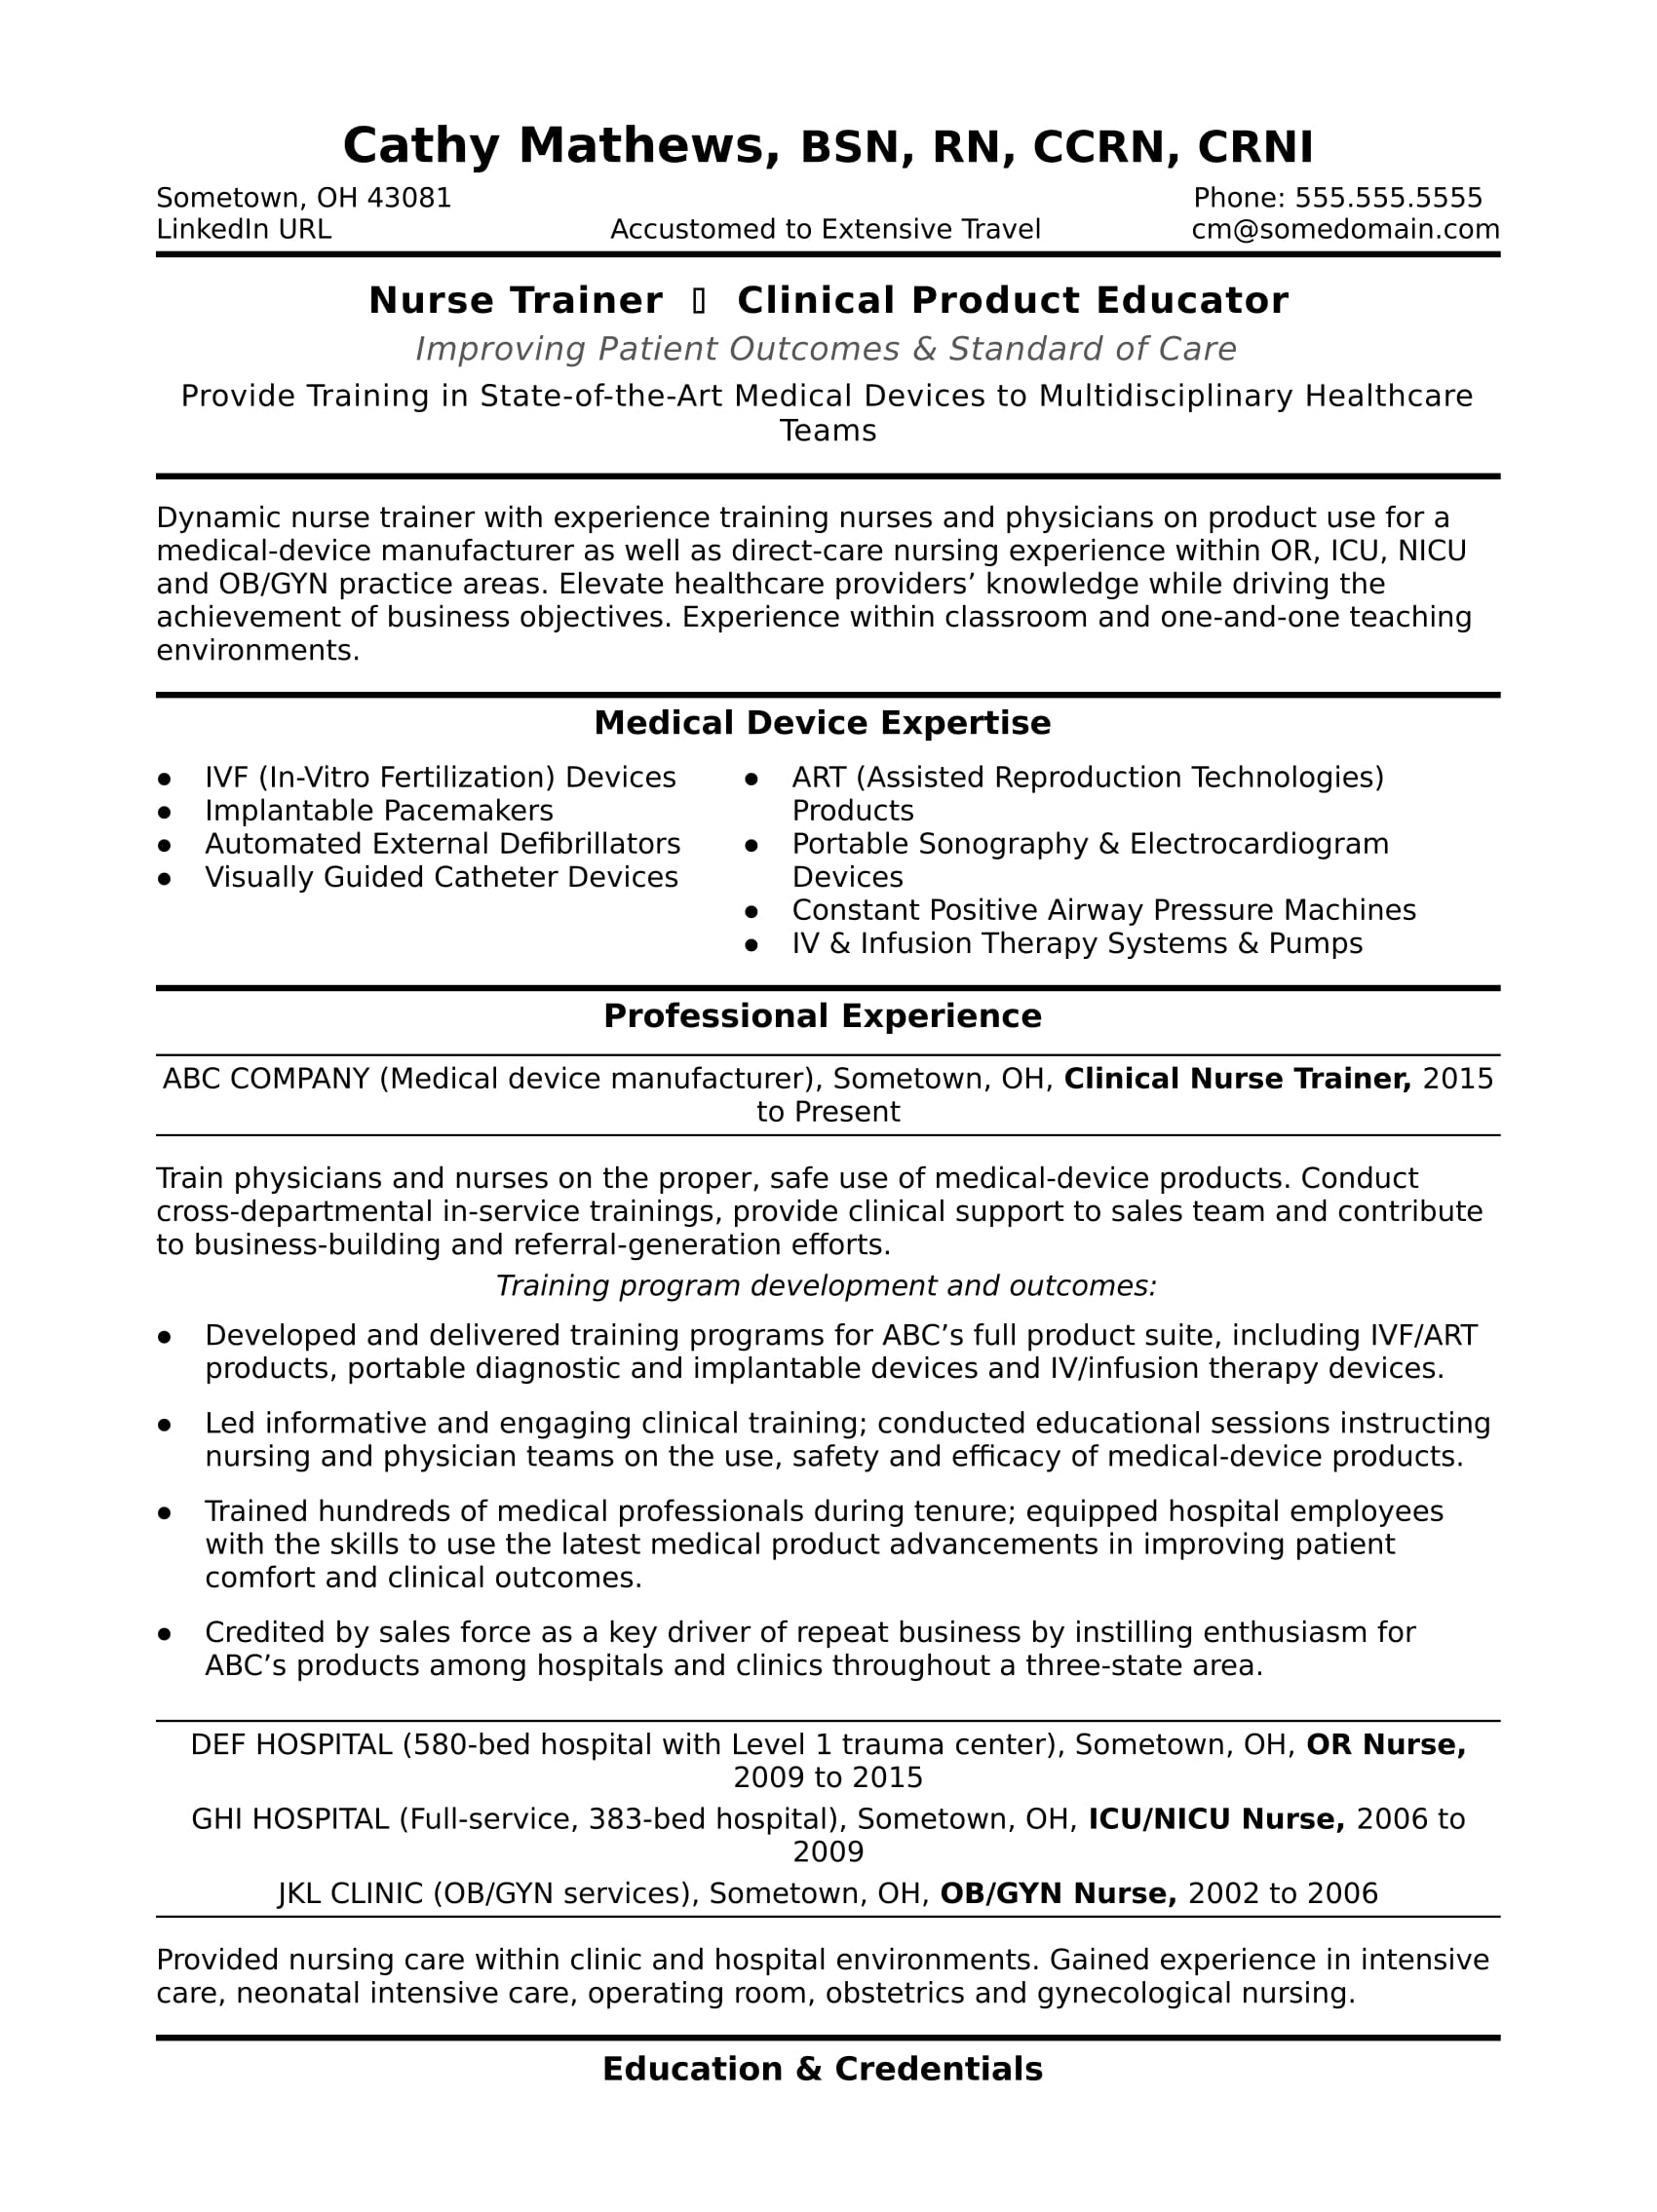 Sample Resume For A Nurse Trainer  Healthcare Resume Samples